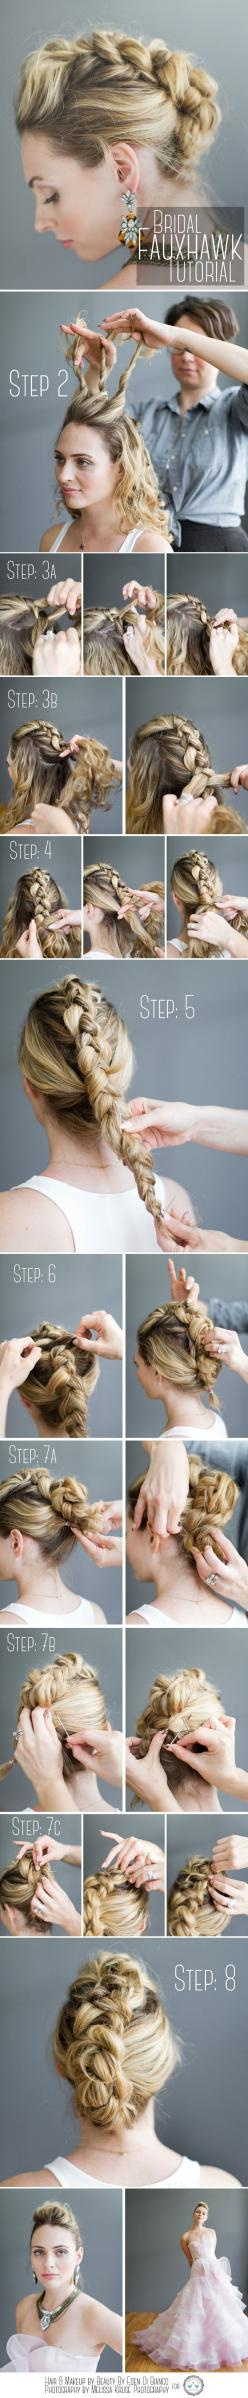 Braided faux hawk https://www.stonebridge.uk.com/course/hairdressing-qcf-diploma-level-3: Wedding Hair, Wedding Updo Tutorial, Hair Tutorial, Hair Style, Faux Hawk, Concert Hairstyle, Braided Mohawk